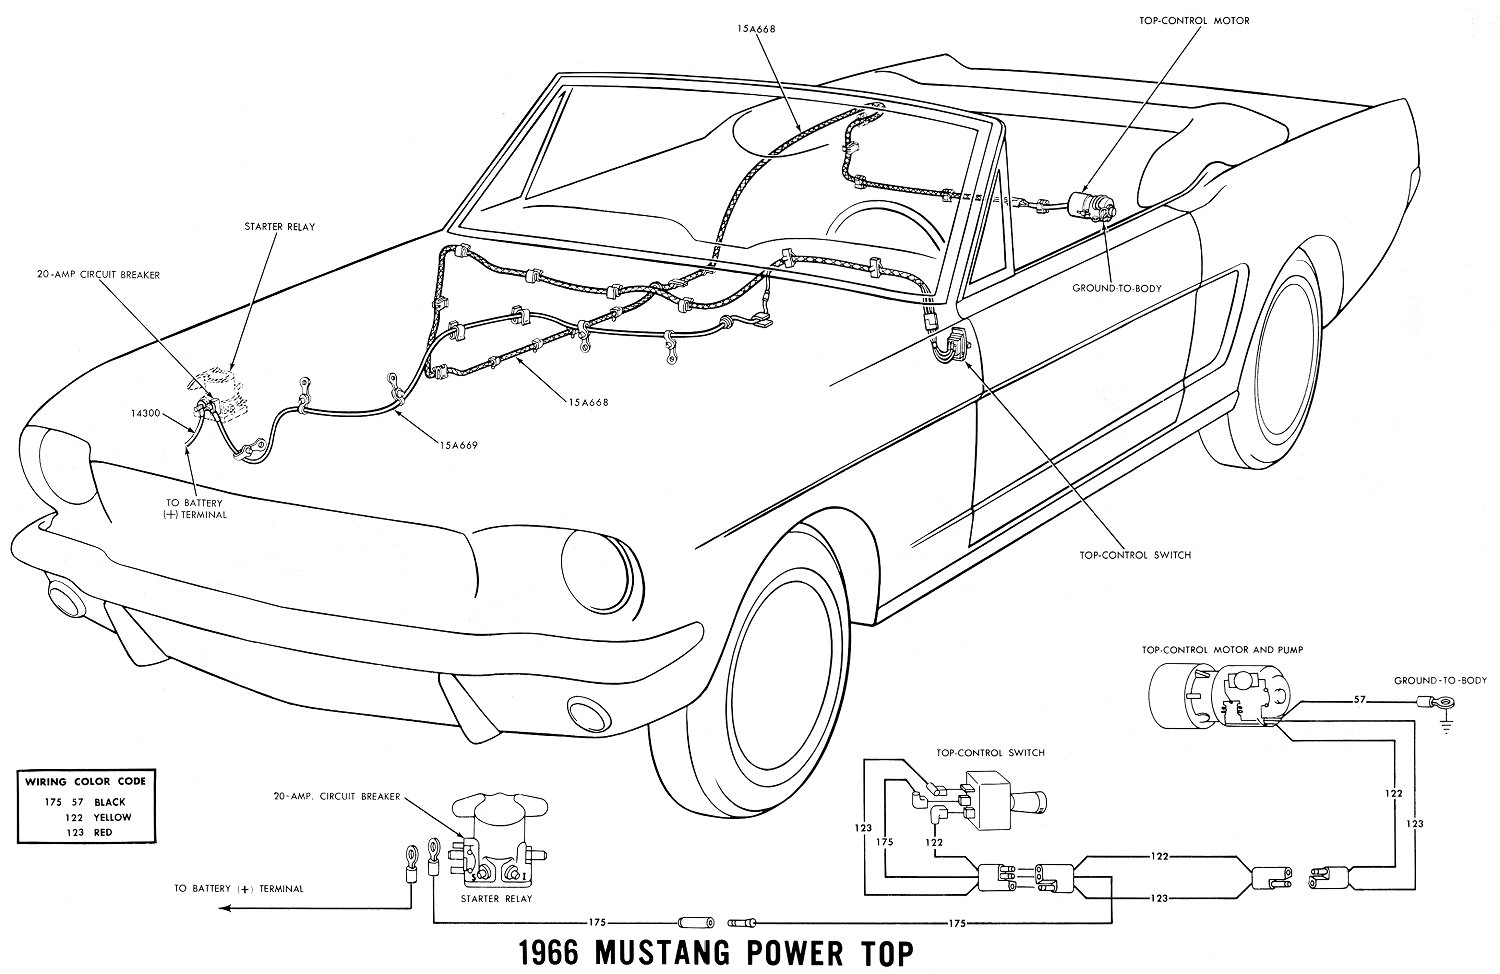 66pwrtop 1966 mustang wiring diagrams average joe restoration 1966 mustang alternator wiring diagram at mifinder.co